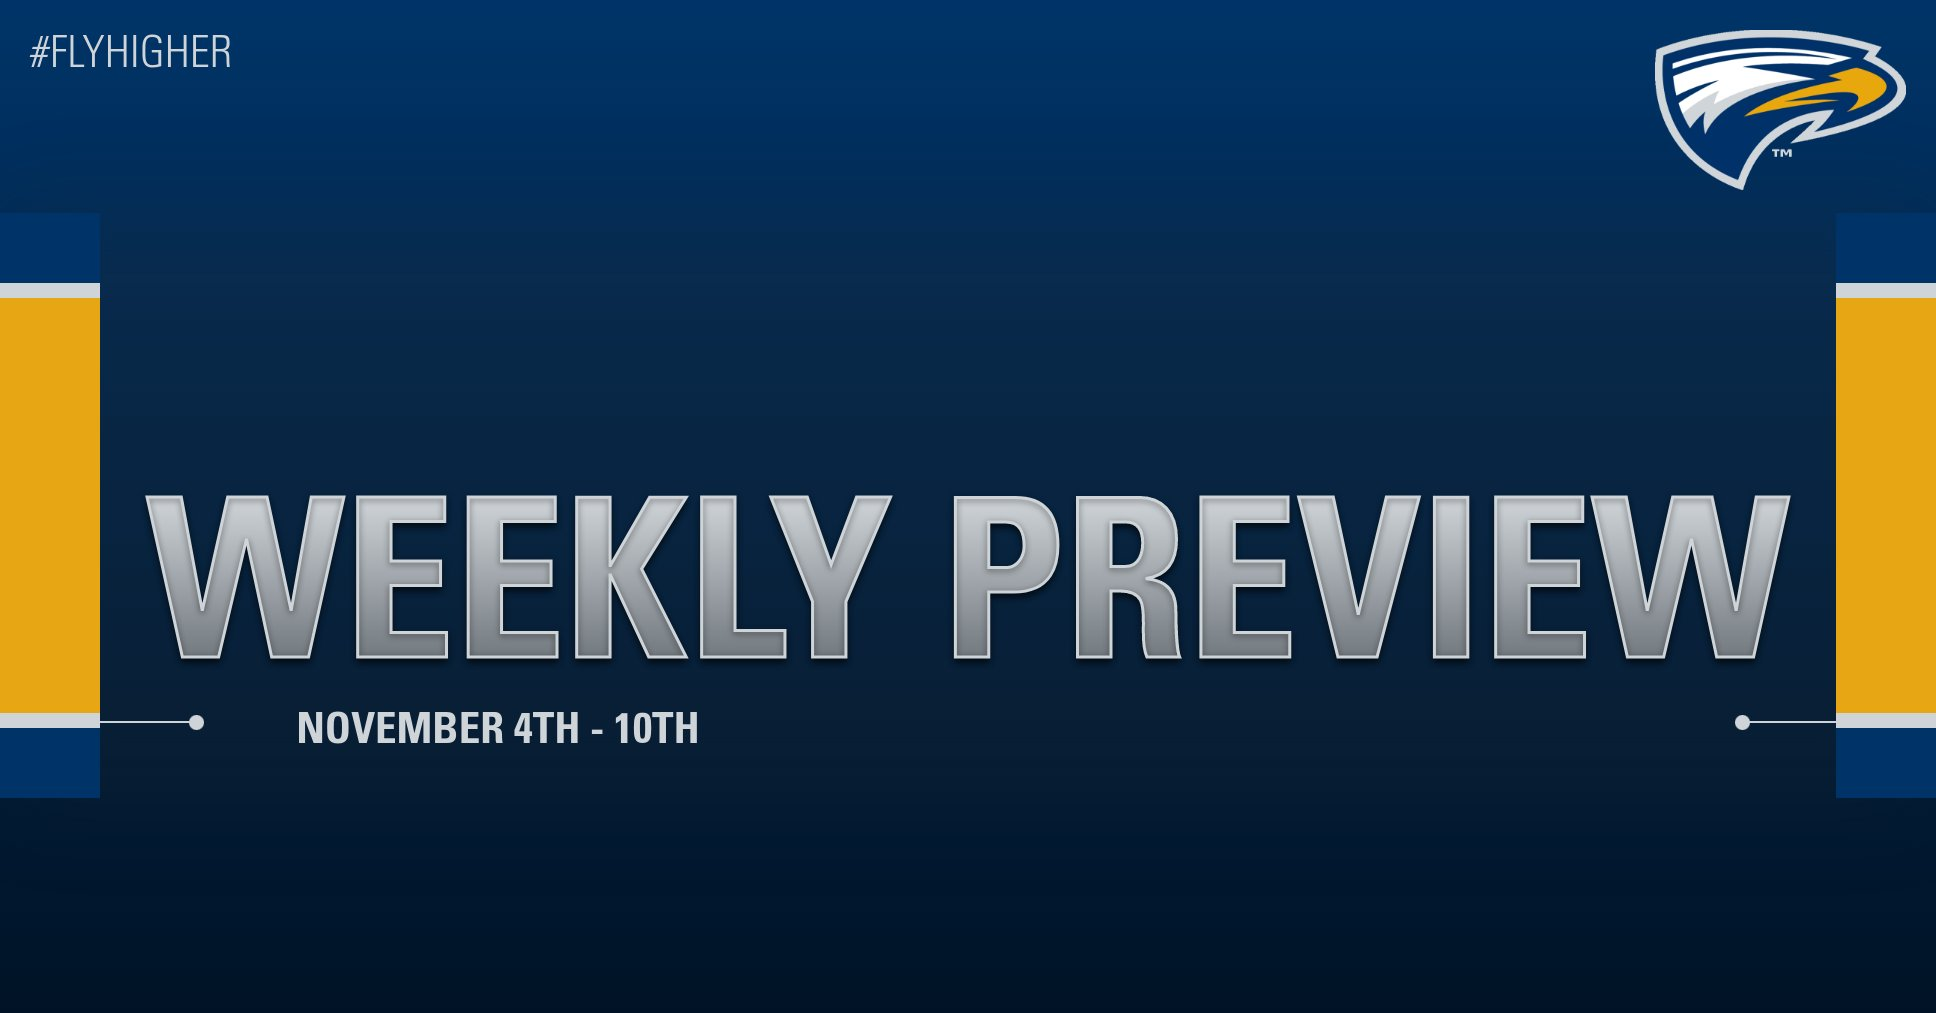 Emory Athletics Weekly Preview - November 4th - 10th